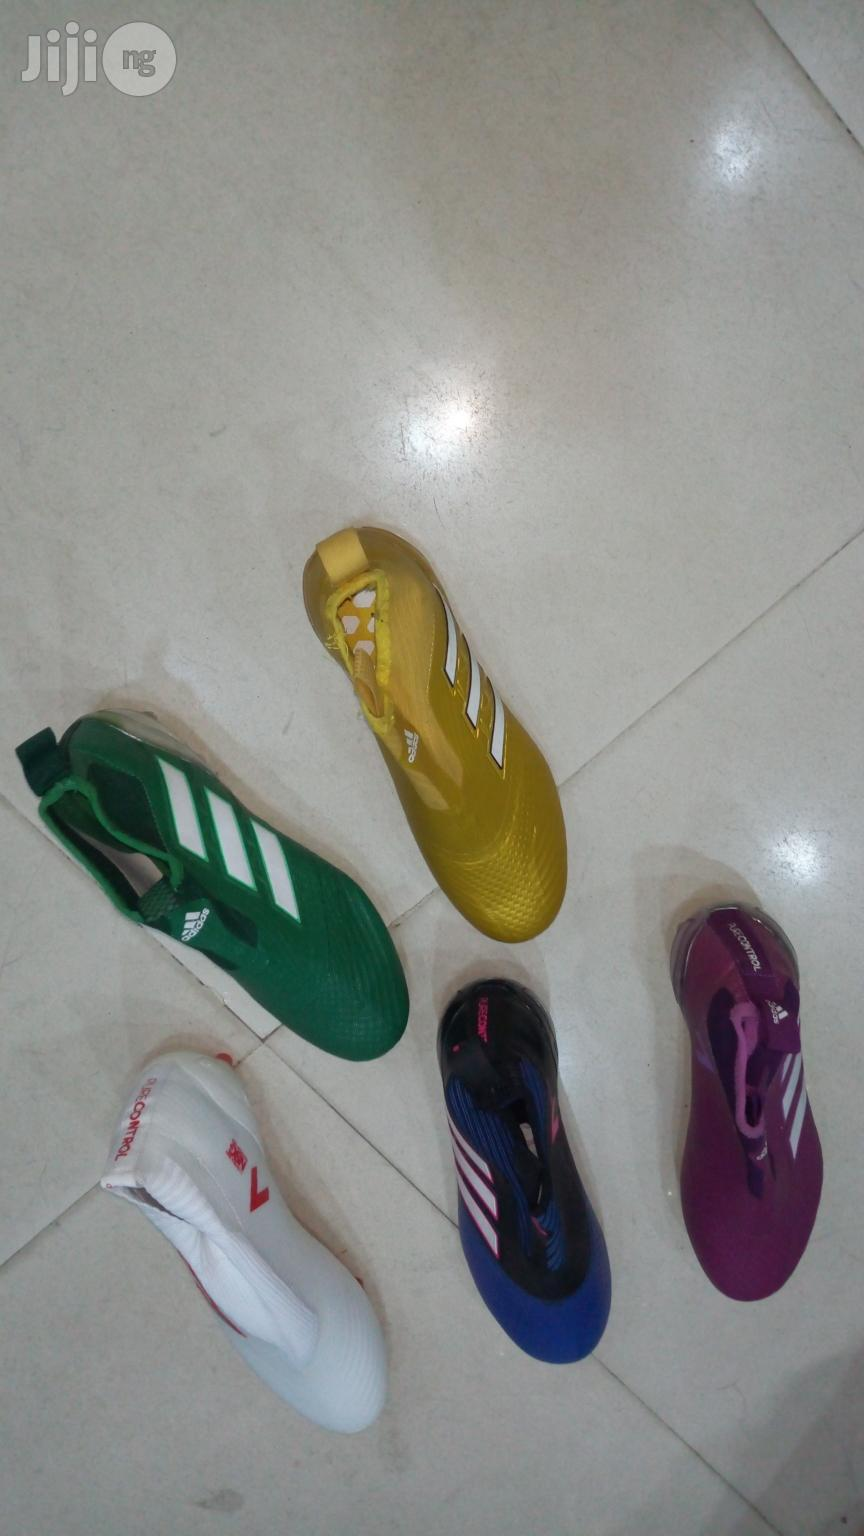 Latest Adidas Angle Boot | Shoes for sale in Surulere, Lagos State, Nigeria